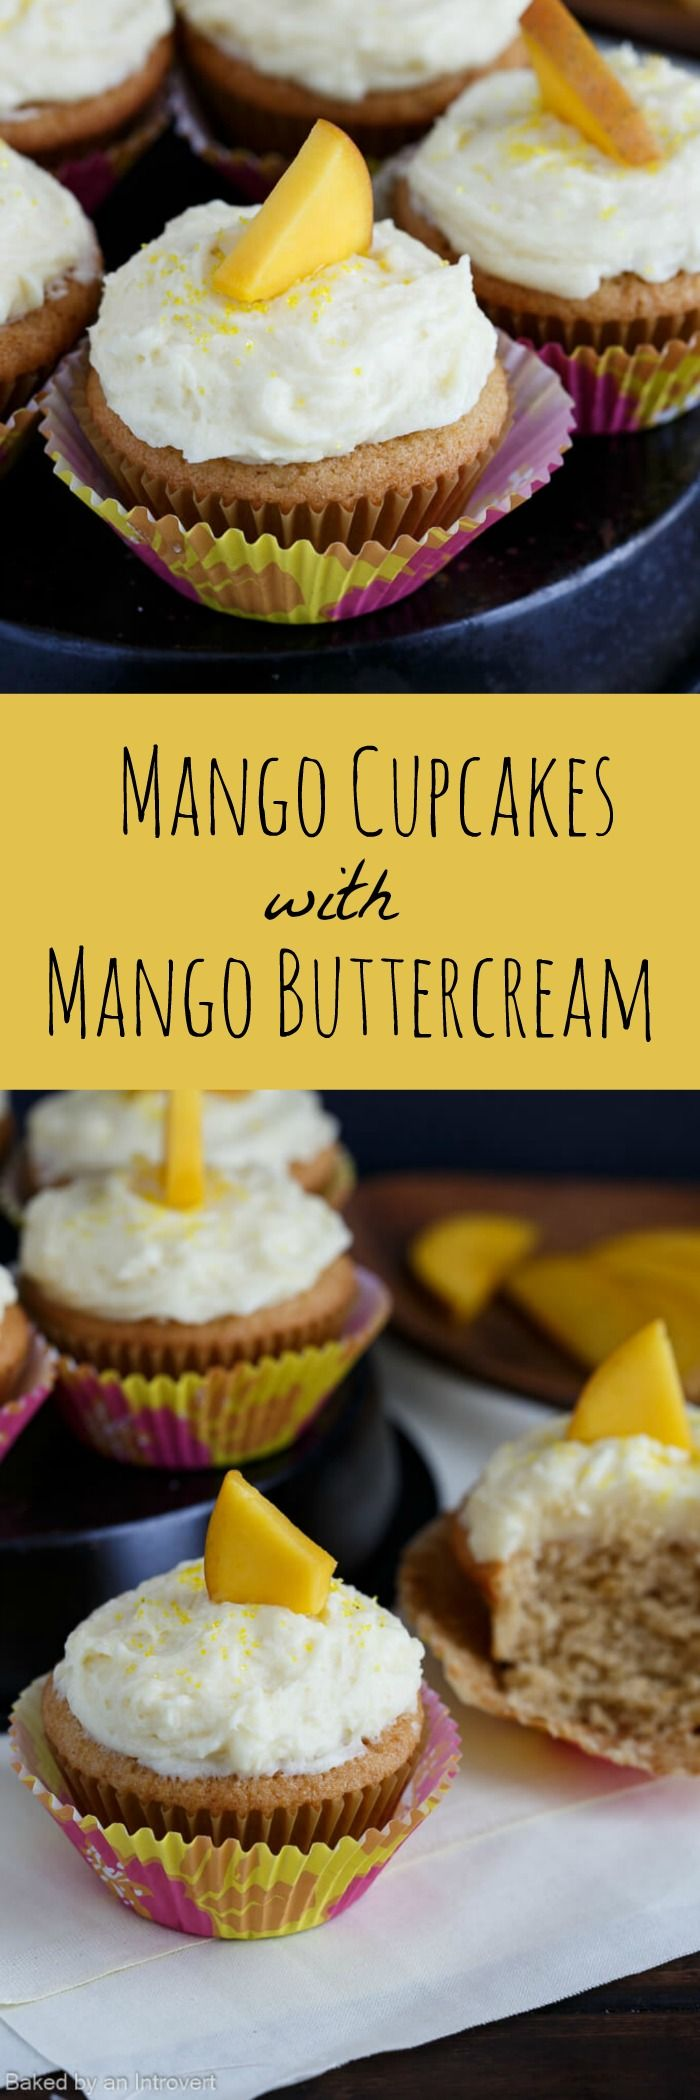 Mango Cupcakes with Mango Buttercream Frosting! (buttercream frosting for cookies)